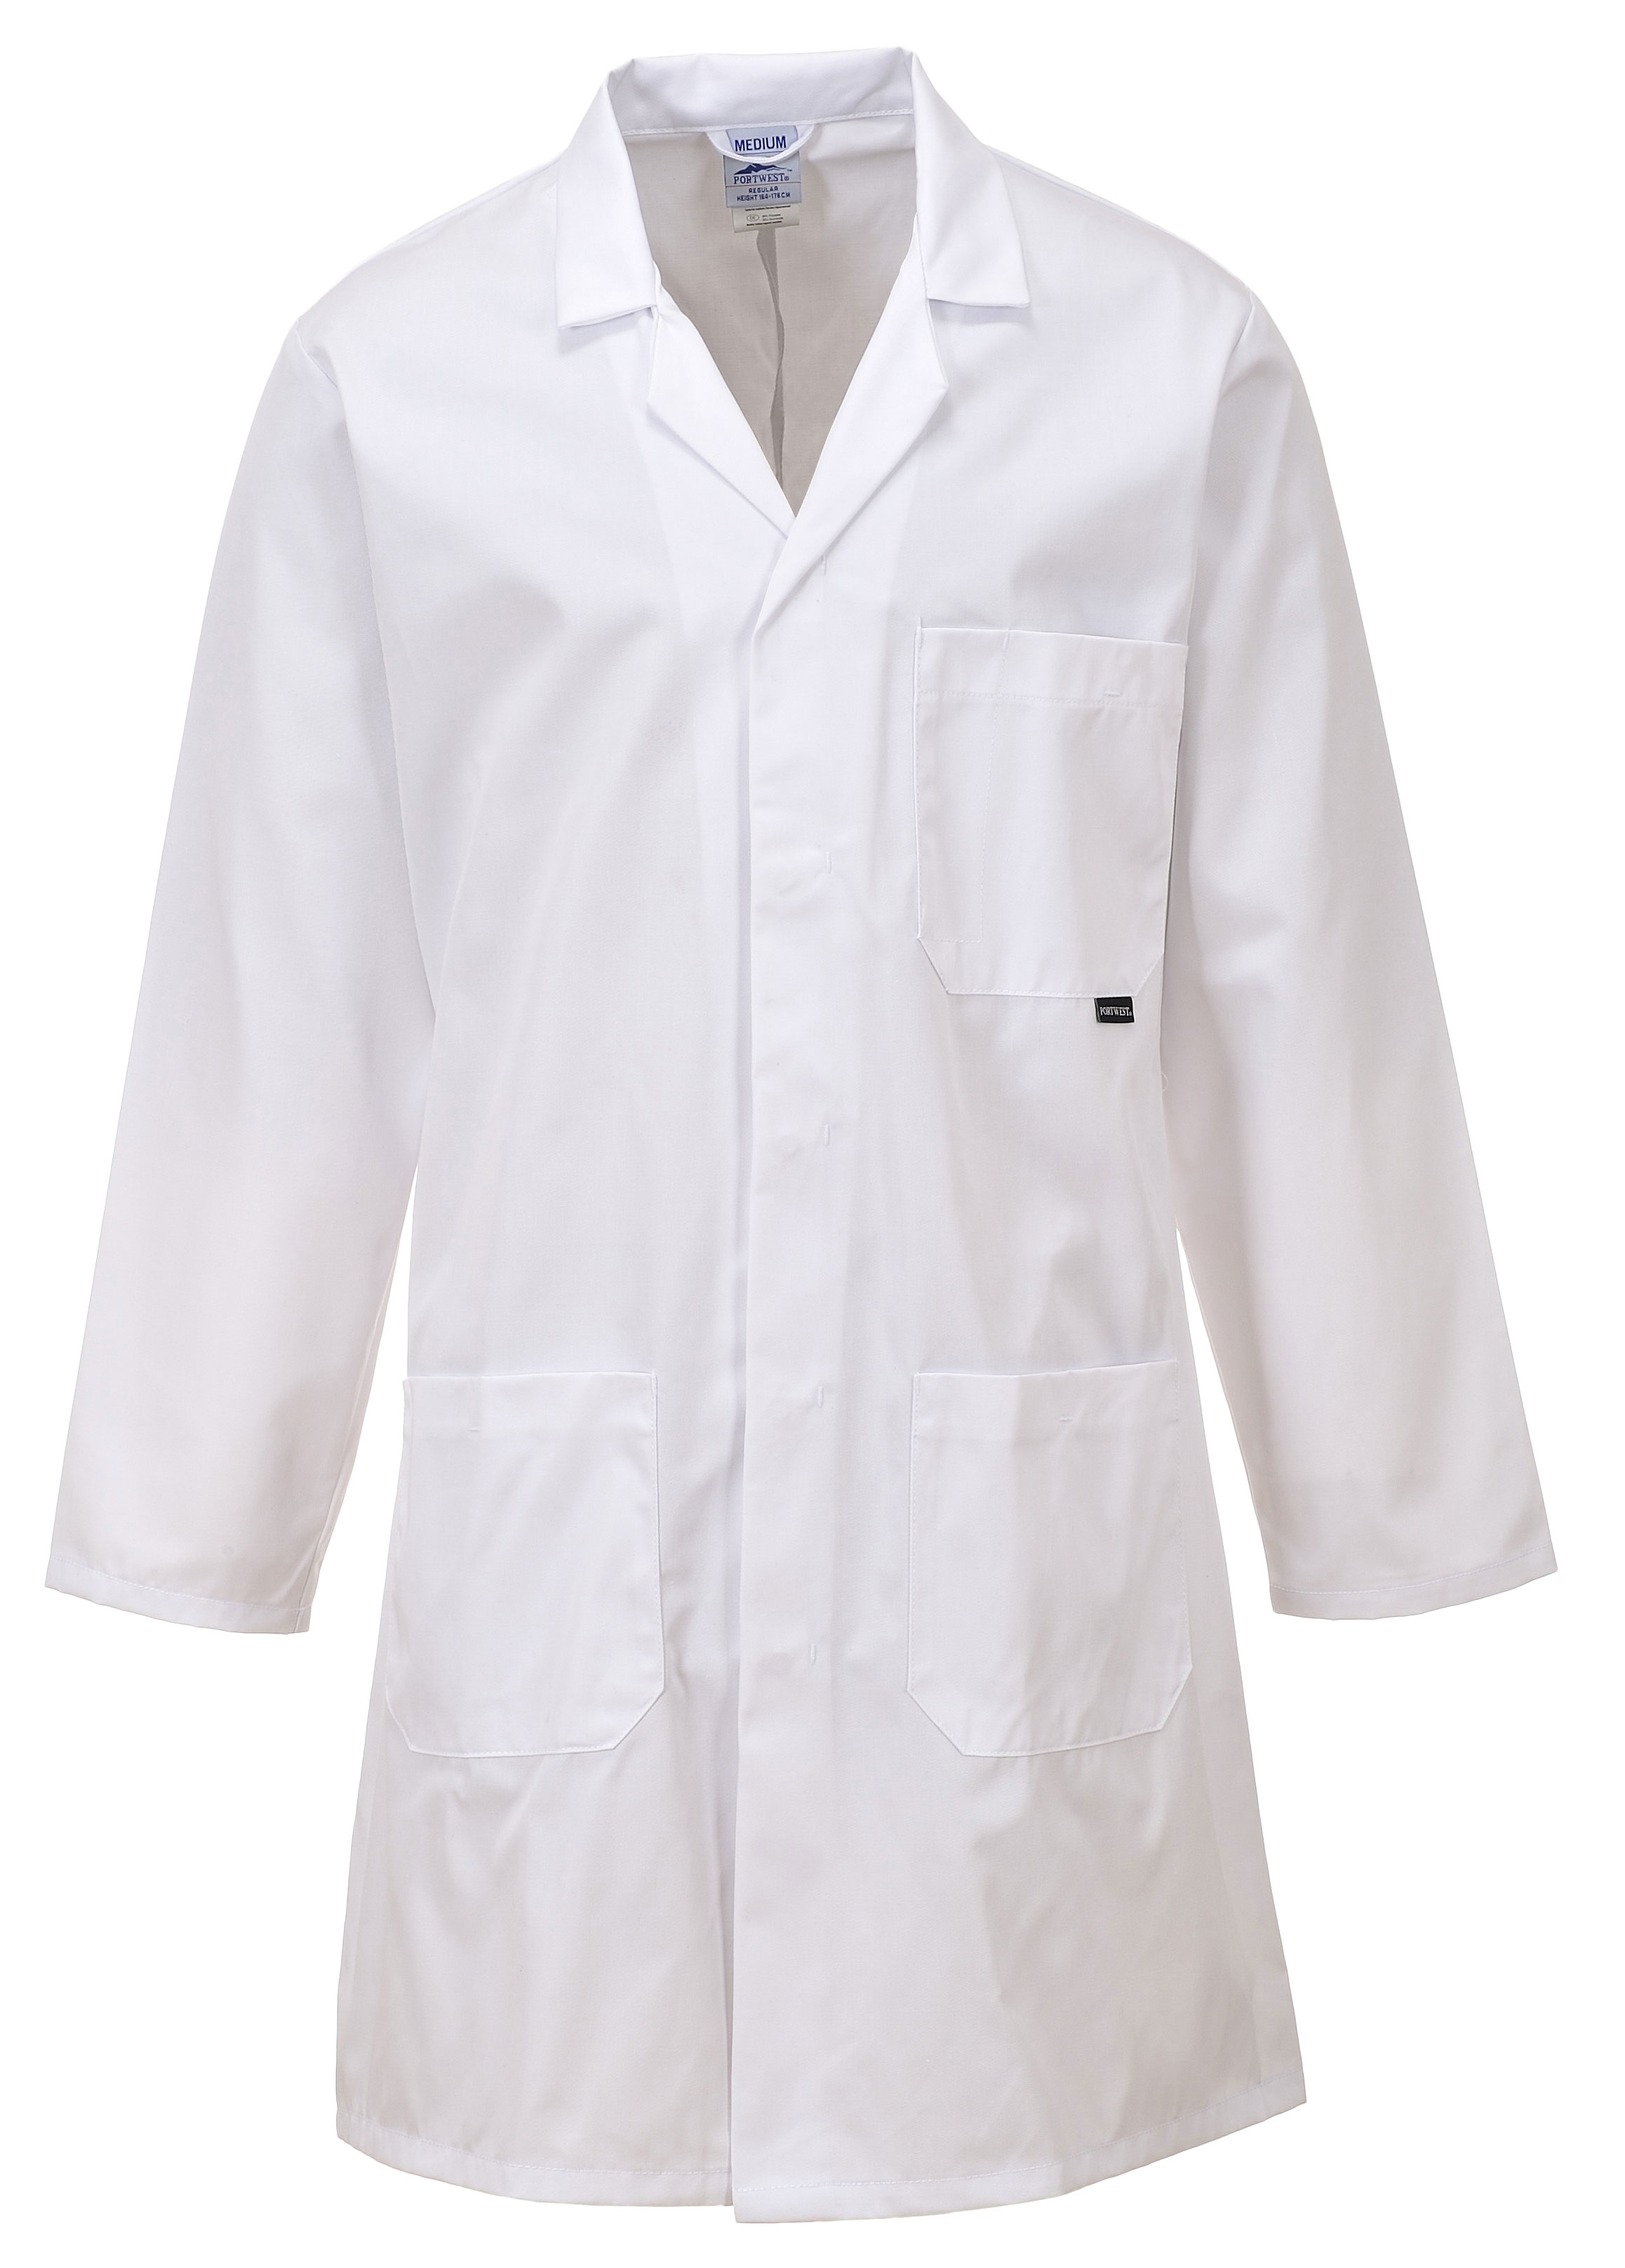 Northrock Safety / Laboratory Coat, Laboratory Coat ...